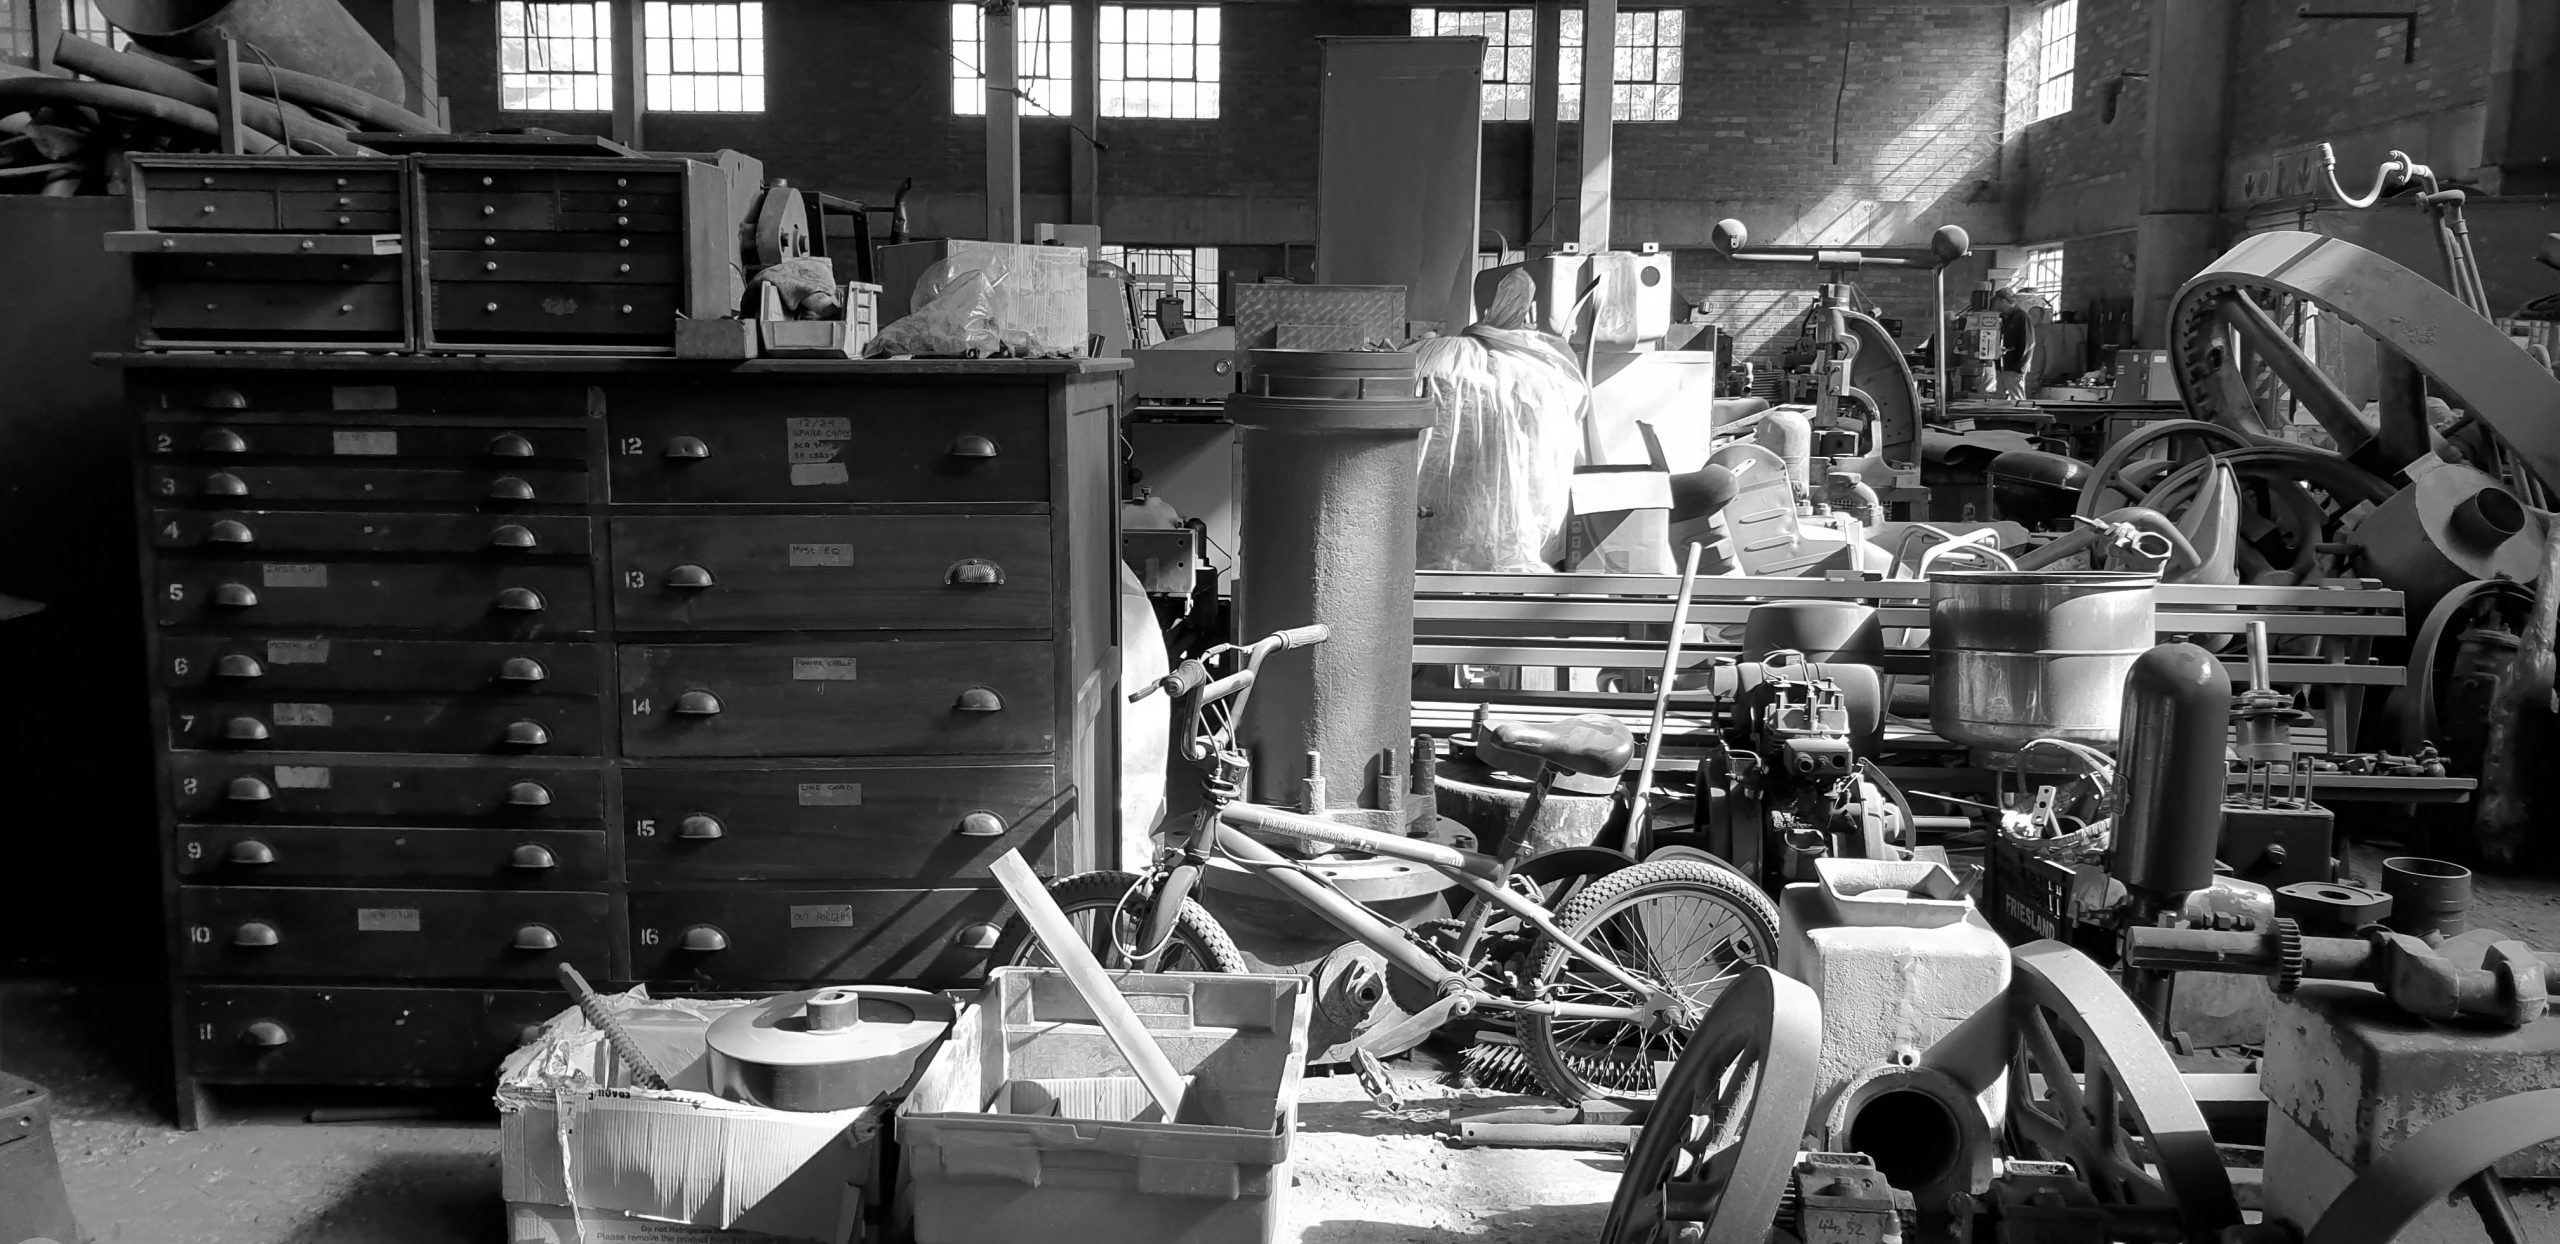 Hoarding and mental health, hoarding junk